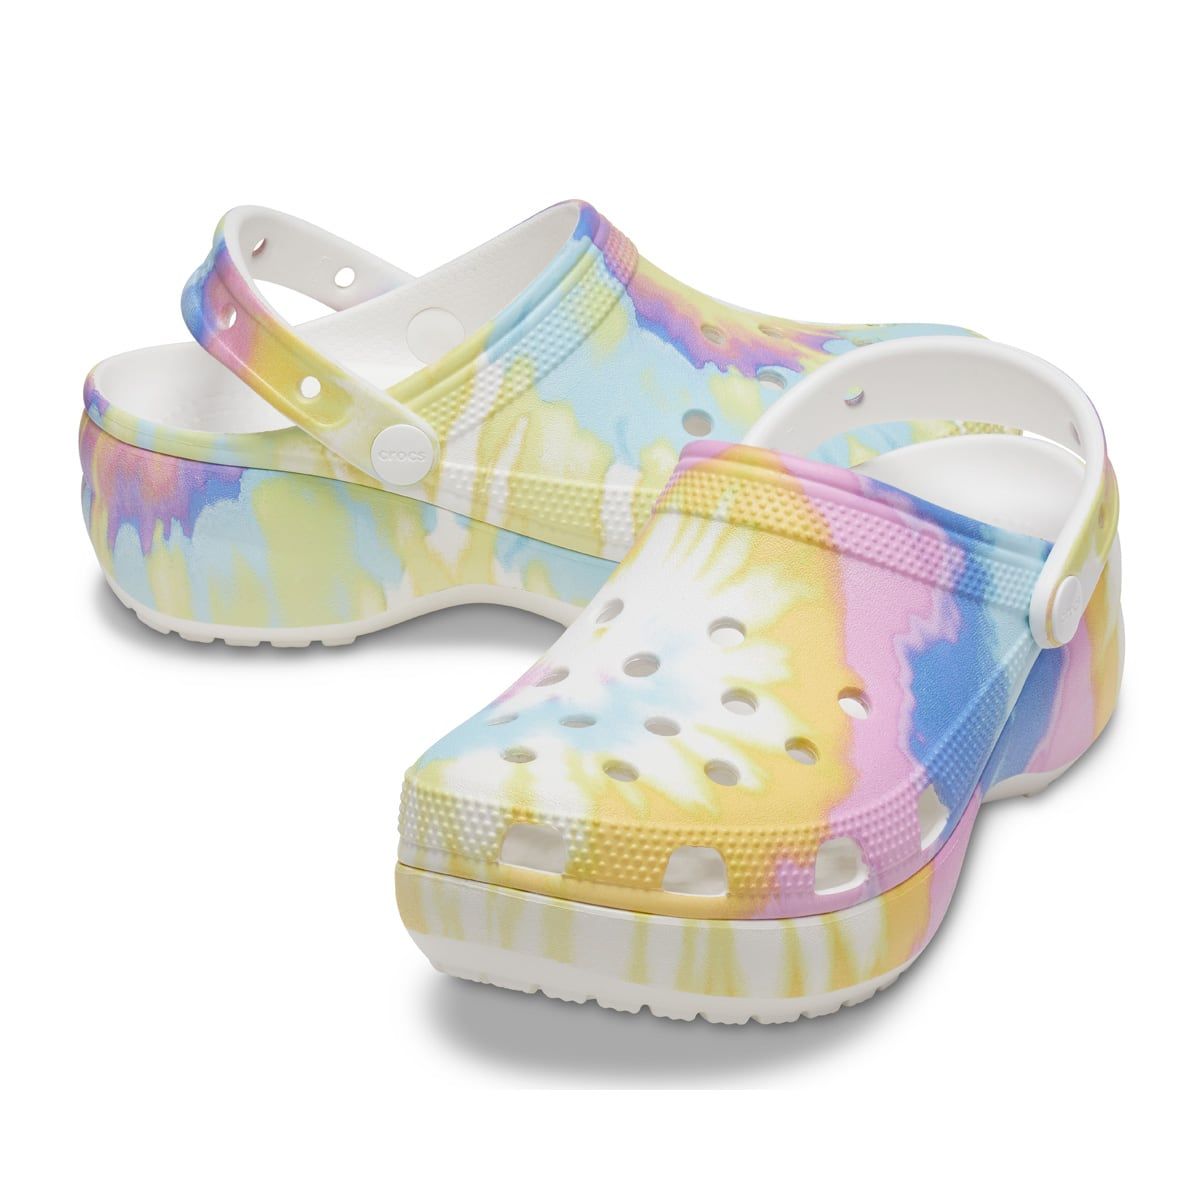 crocs Classic Platform Tie-Dye Graphic Clog W White/Multi 21SS-I_photo_large